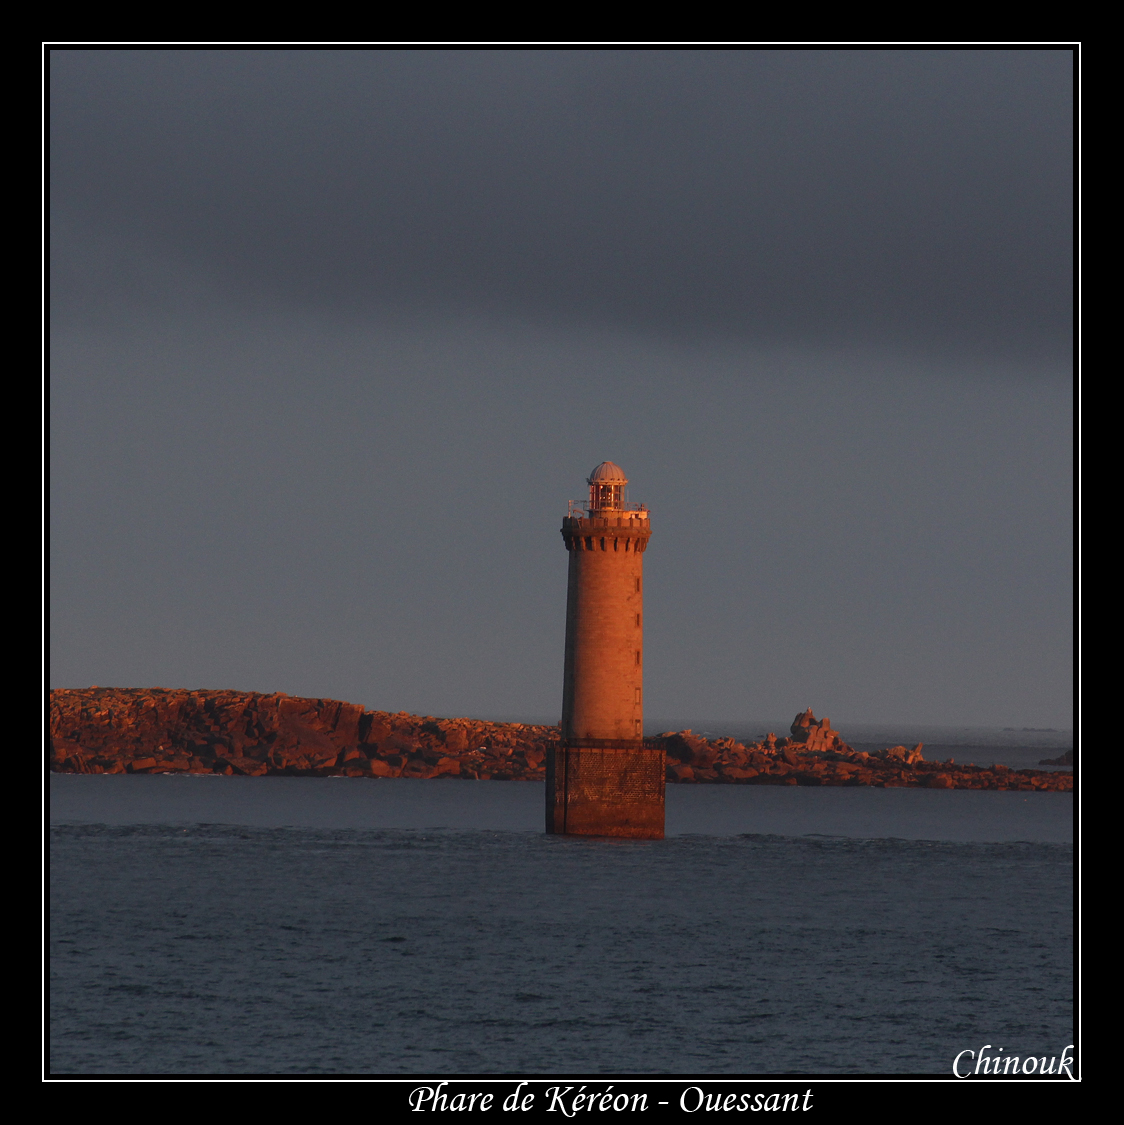 phare-kereon-ouessant